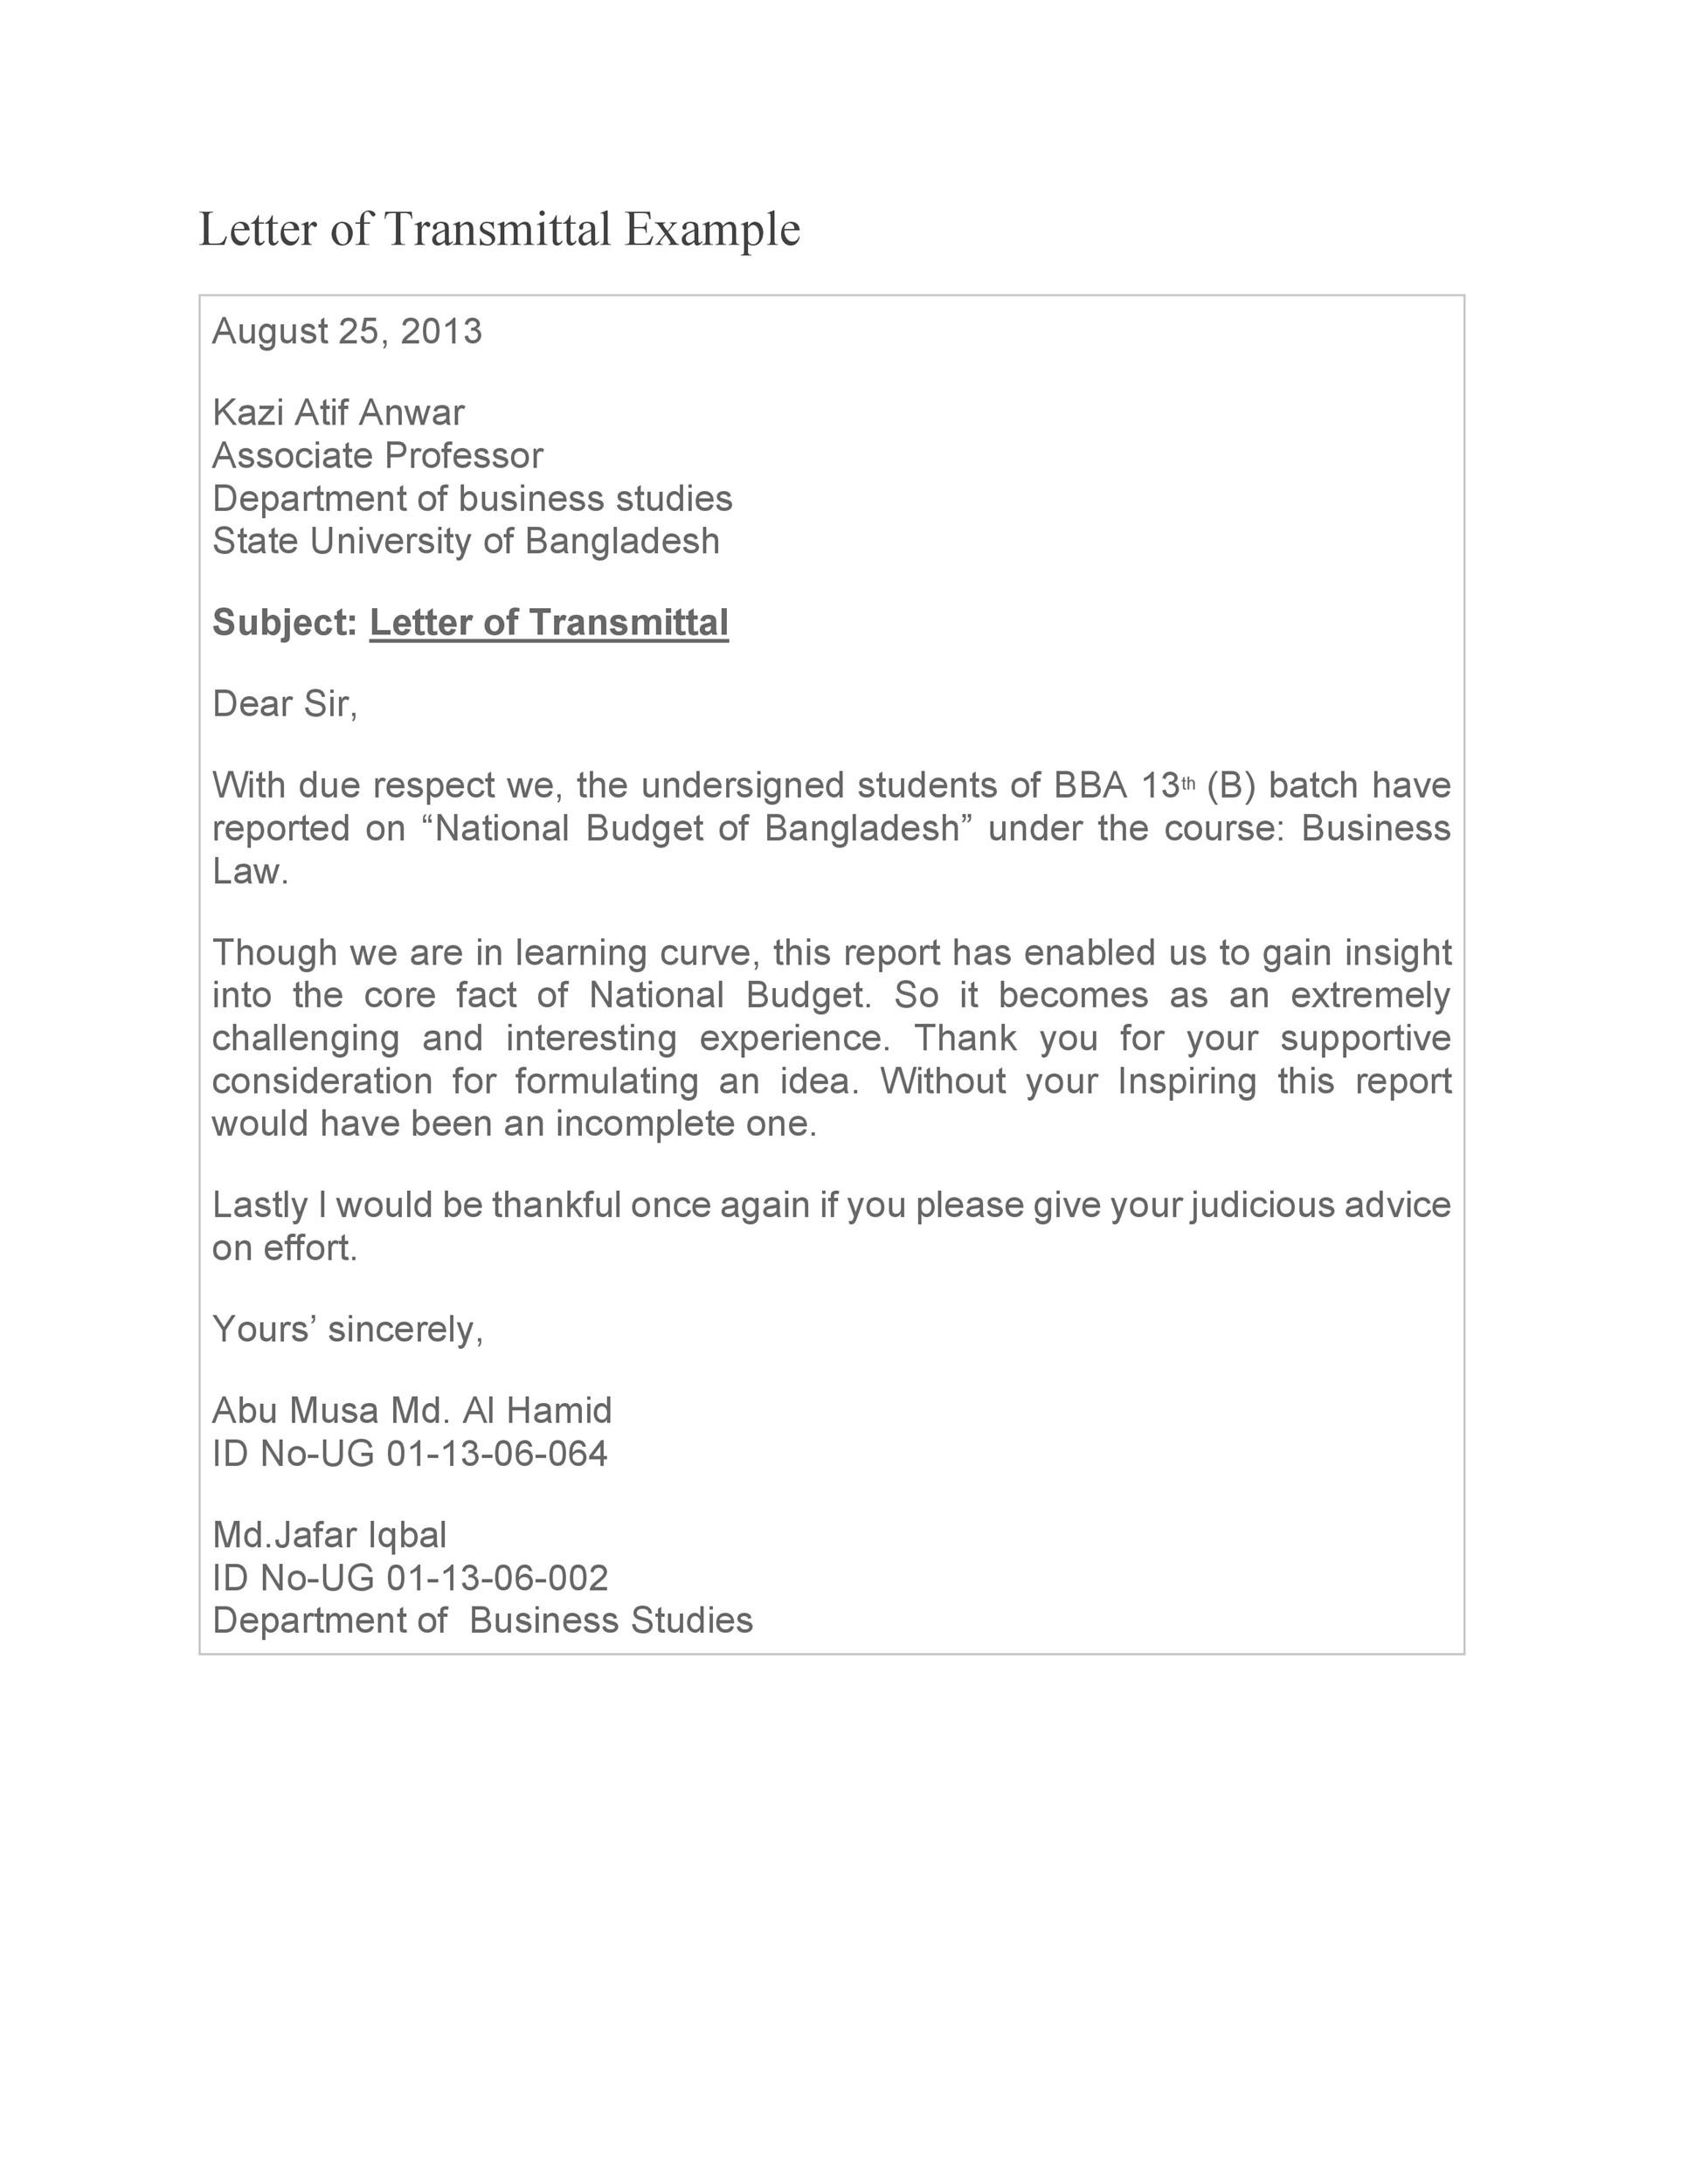 Free letter of transmittal template 35